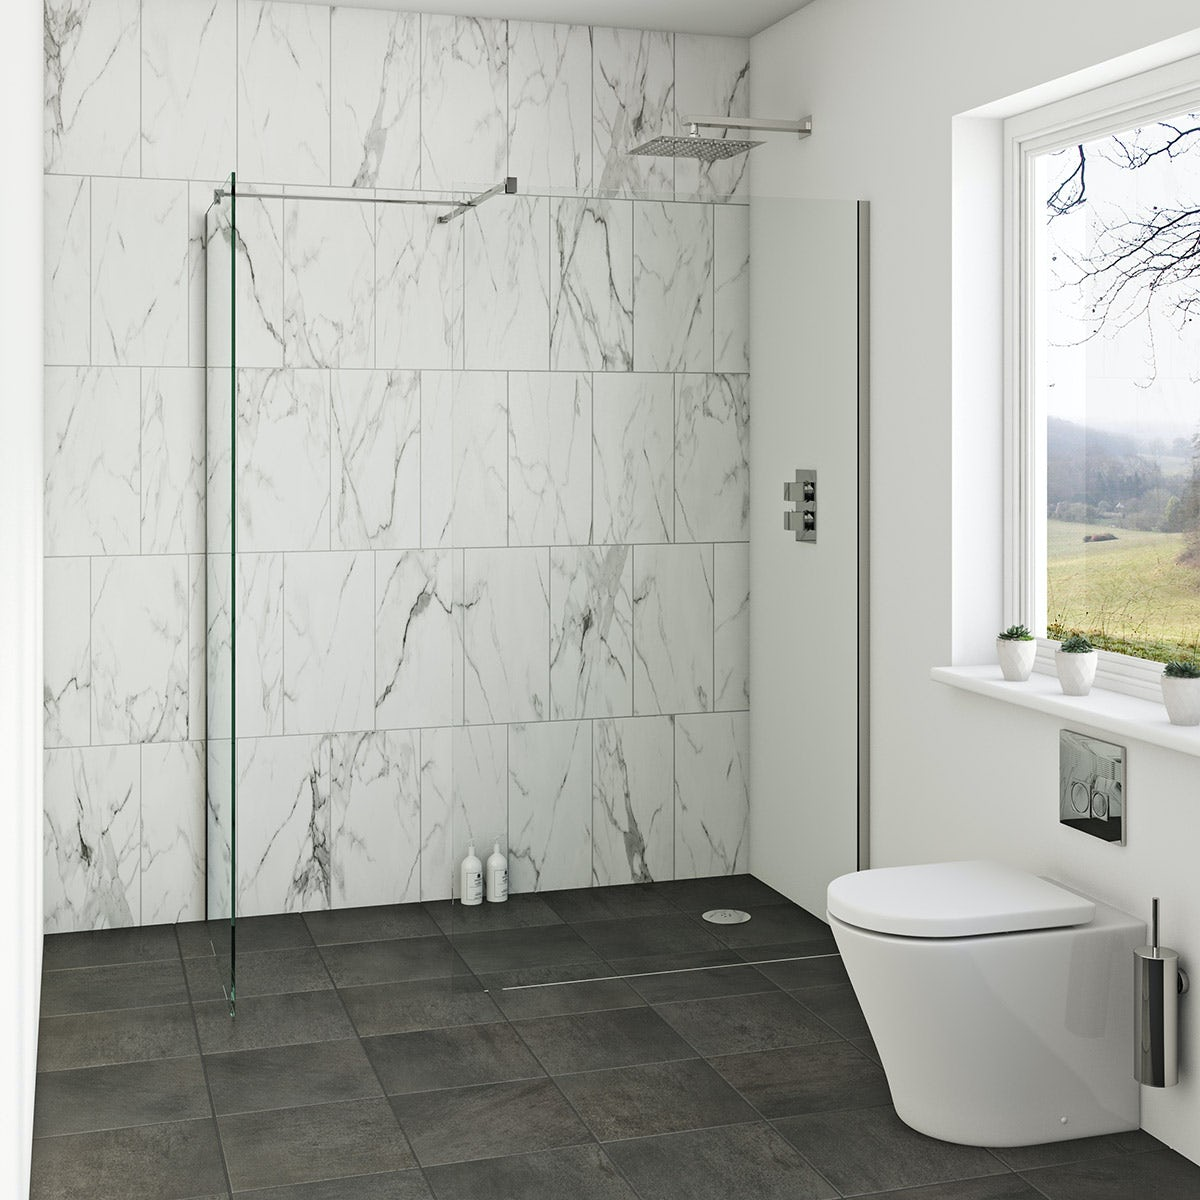 Orchard 8mm wet room enclosure glass panel packs - Bath shower room ...